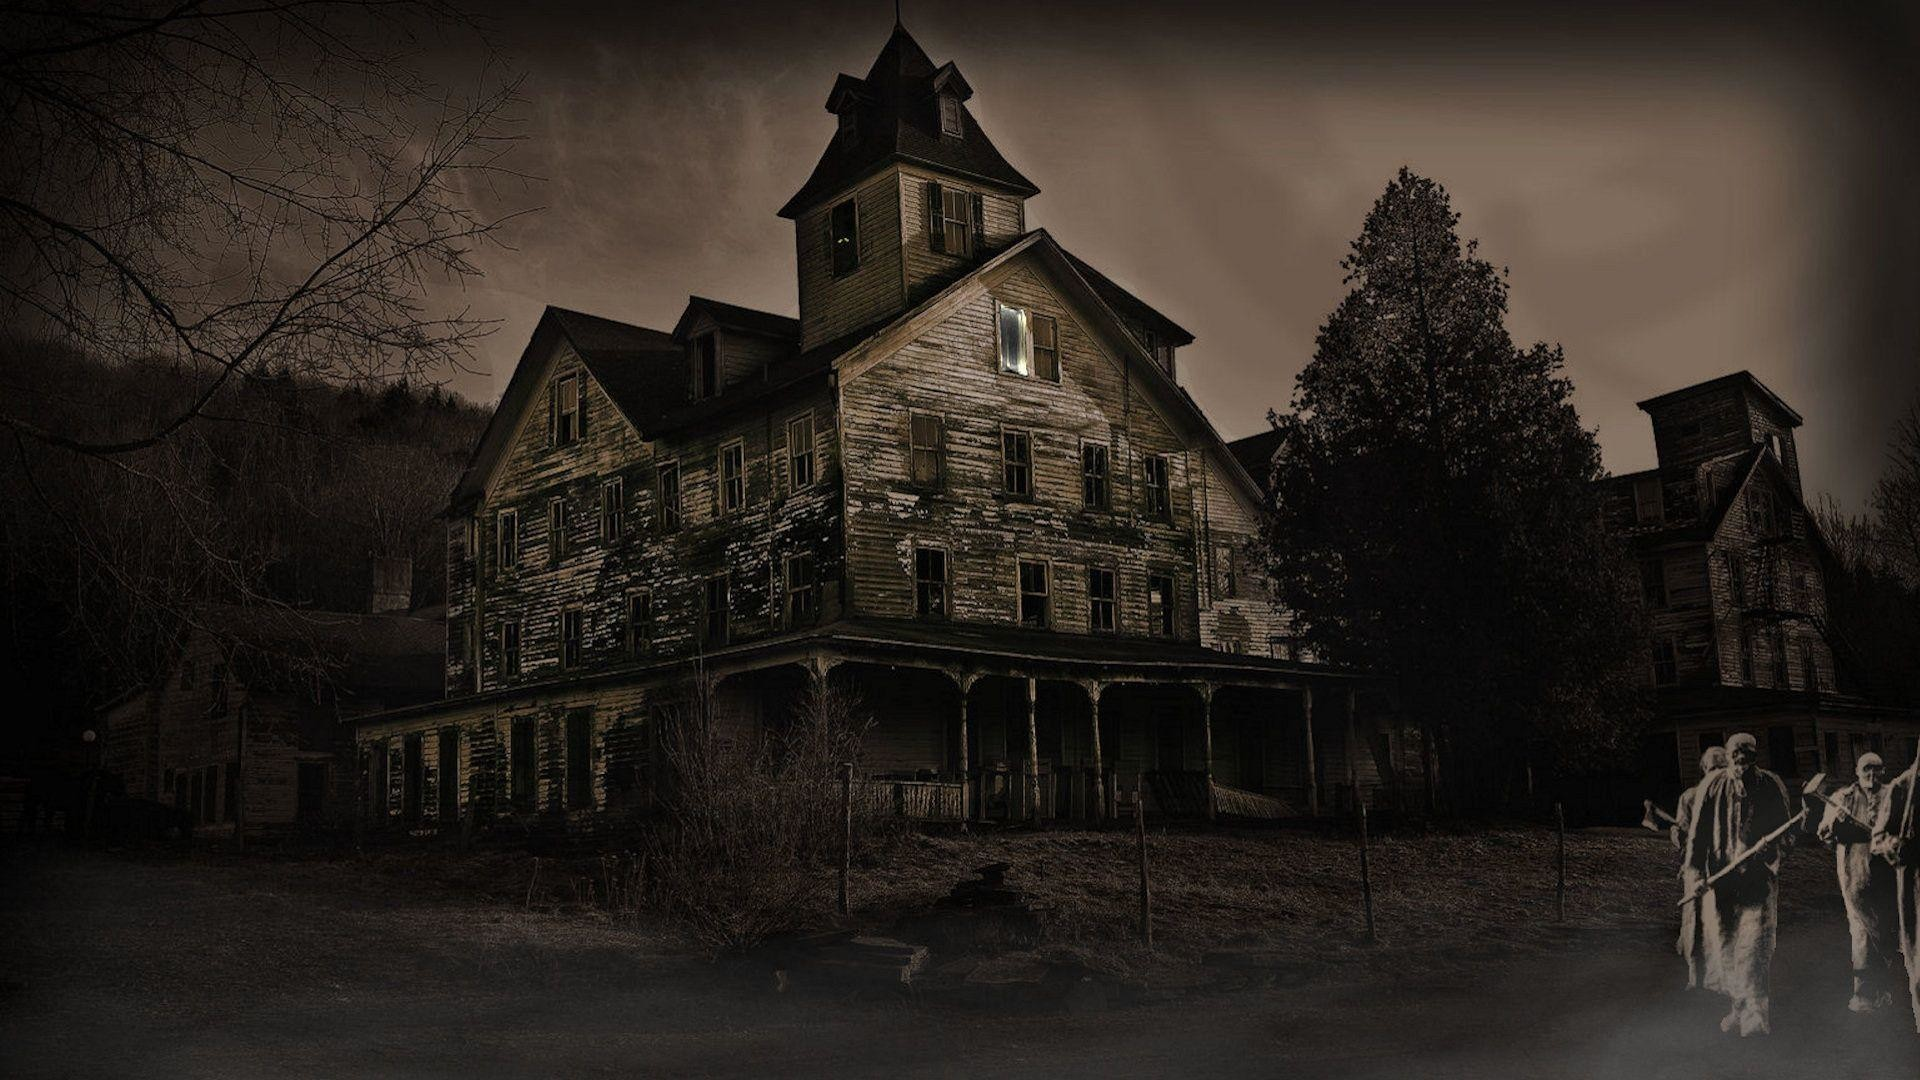 Res: 1920x1080, Haunted House wallpaper - 793459